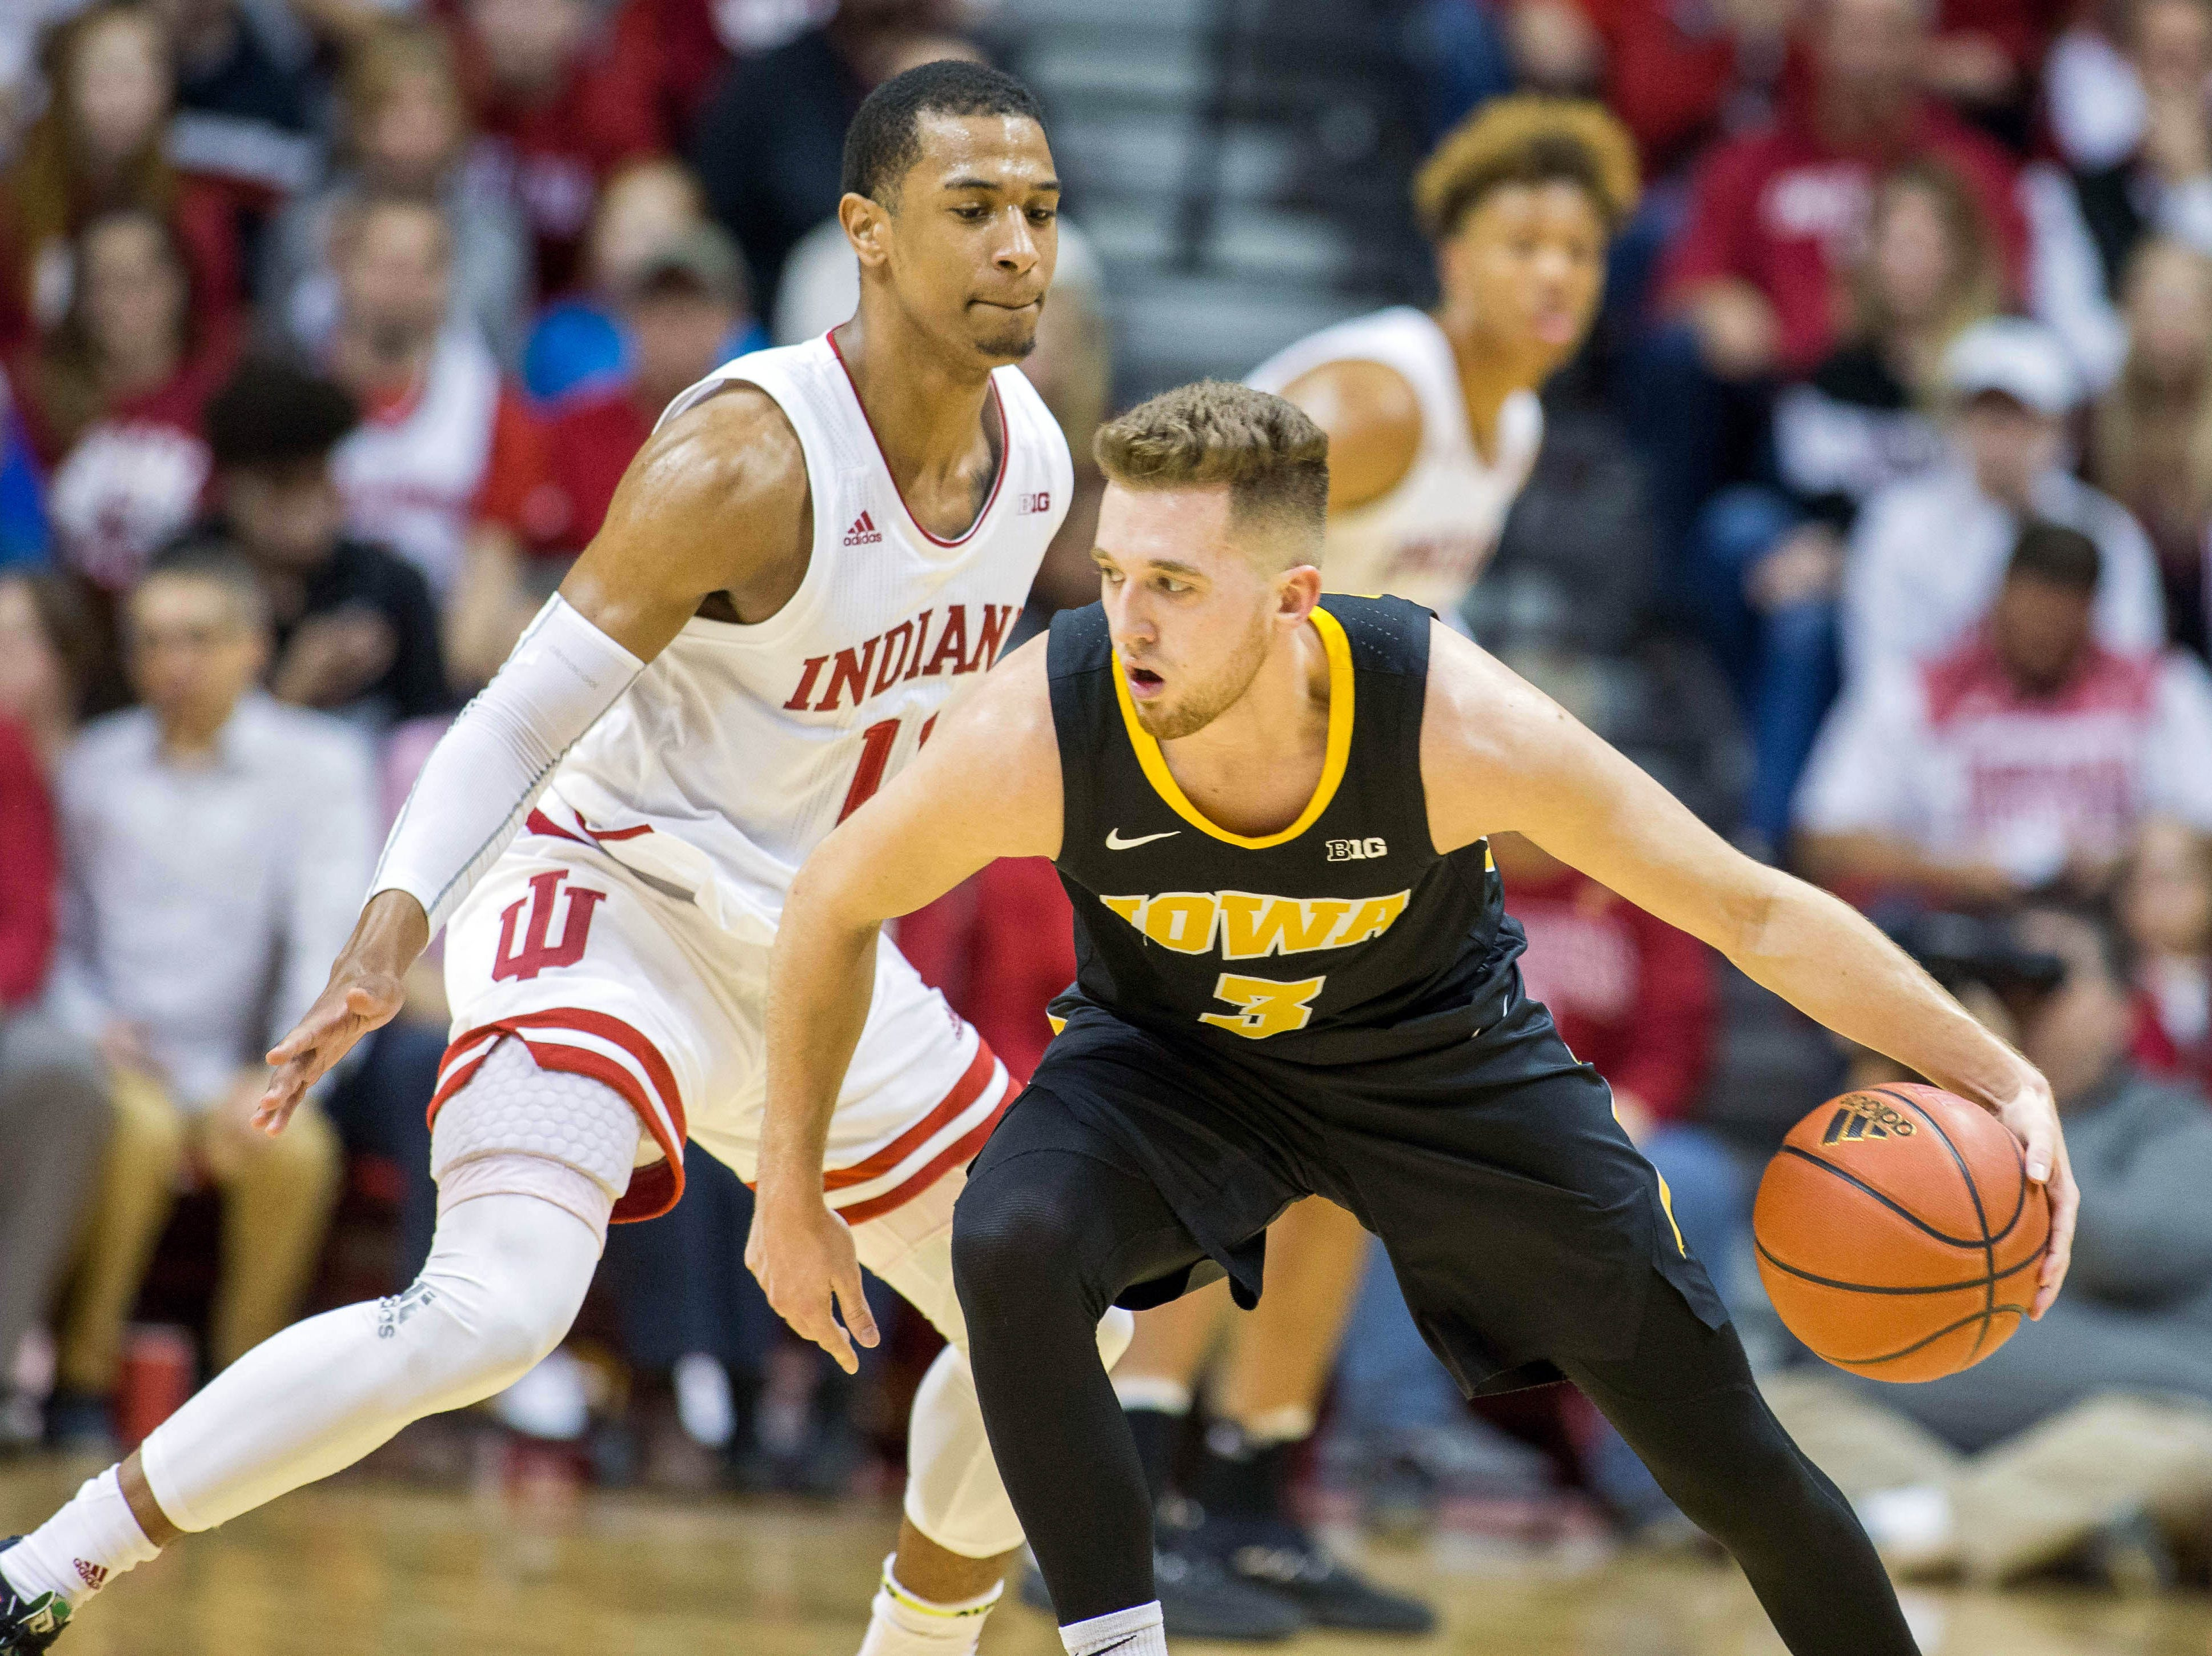 Iowa Hawkeyes guard Jordan Bohannon (3) dribbles the ball while Indiana Hoosiers guard Devonte Green (11) defends in the first half at Assembly Hall. Mandatory Credit: Trevor Ruszkowski-USA TODAY Sports